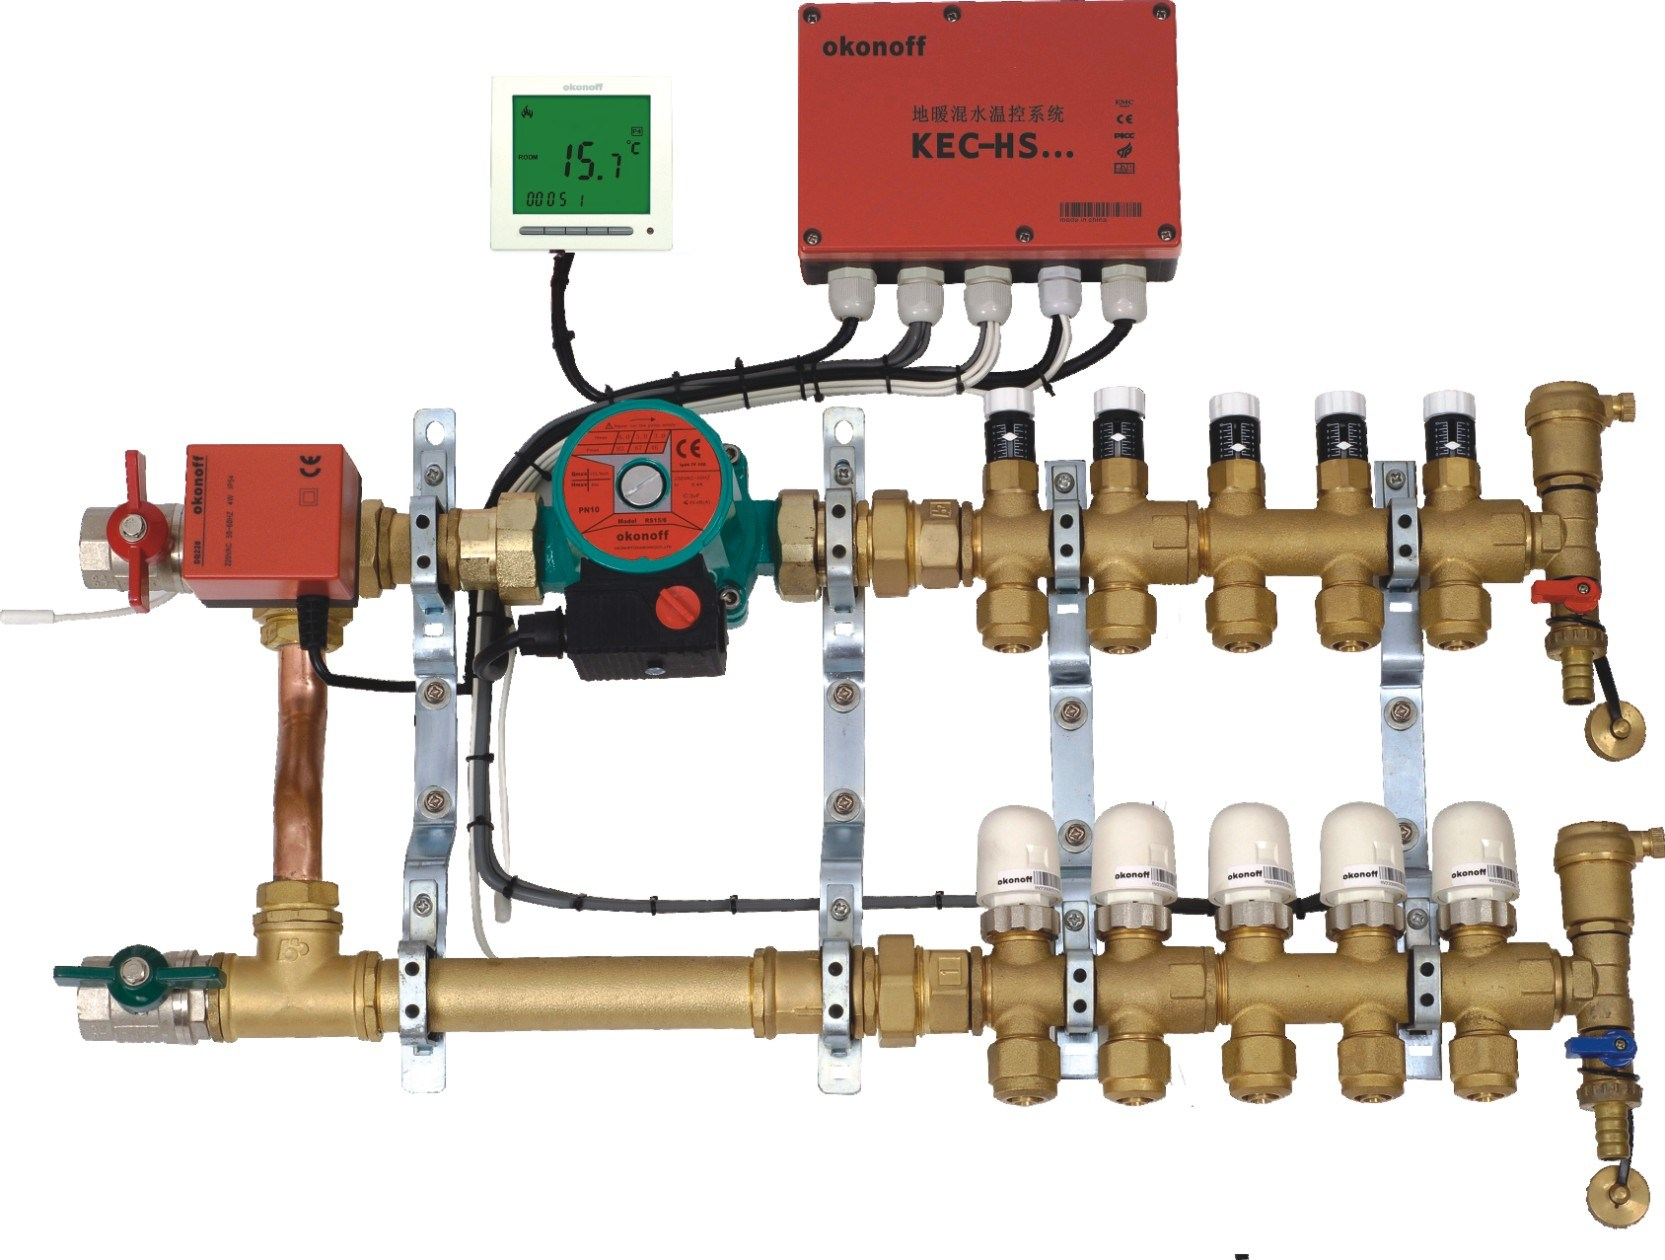 Armstrong offers both a complete system and a modular component solution to mixed water temperature control across the entire Institutional and Industrial Hot